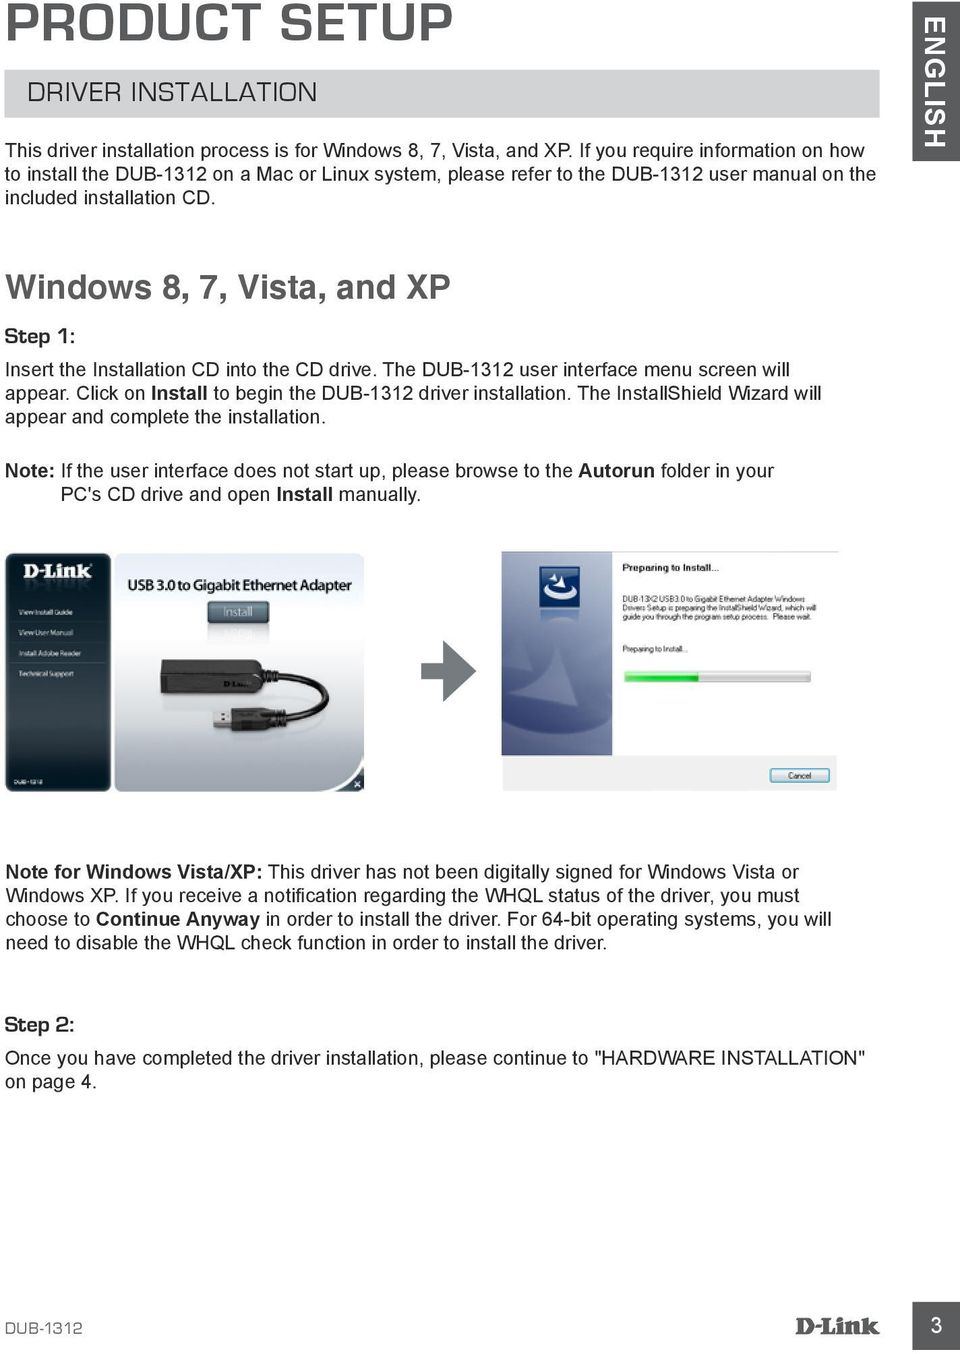 ENGLISH Windows 8, 7, Vista, and XP Step 1: Insert the Installation CD into the CD drive. The user interface menu screen will appear. Click on Install to begin the driver installation.